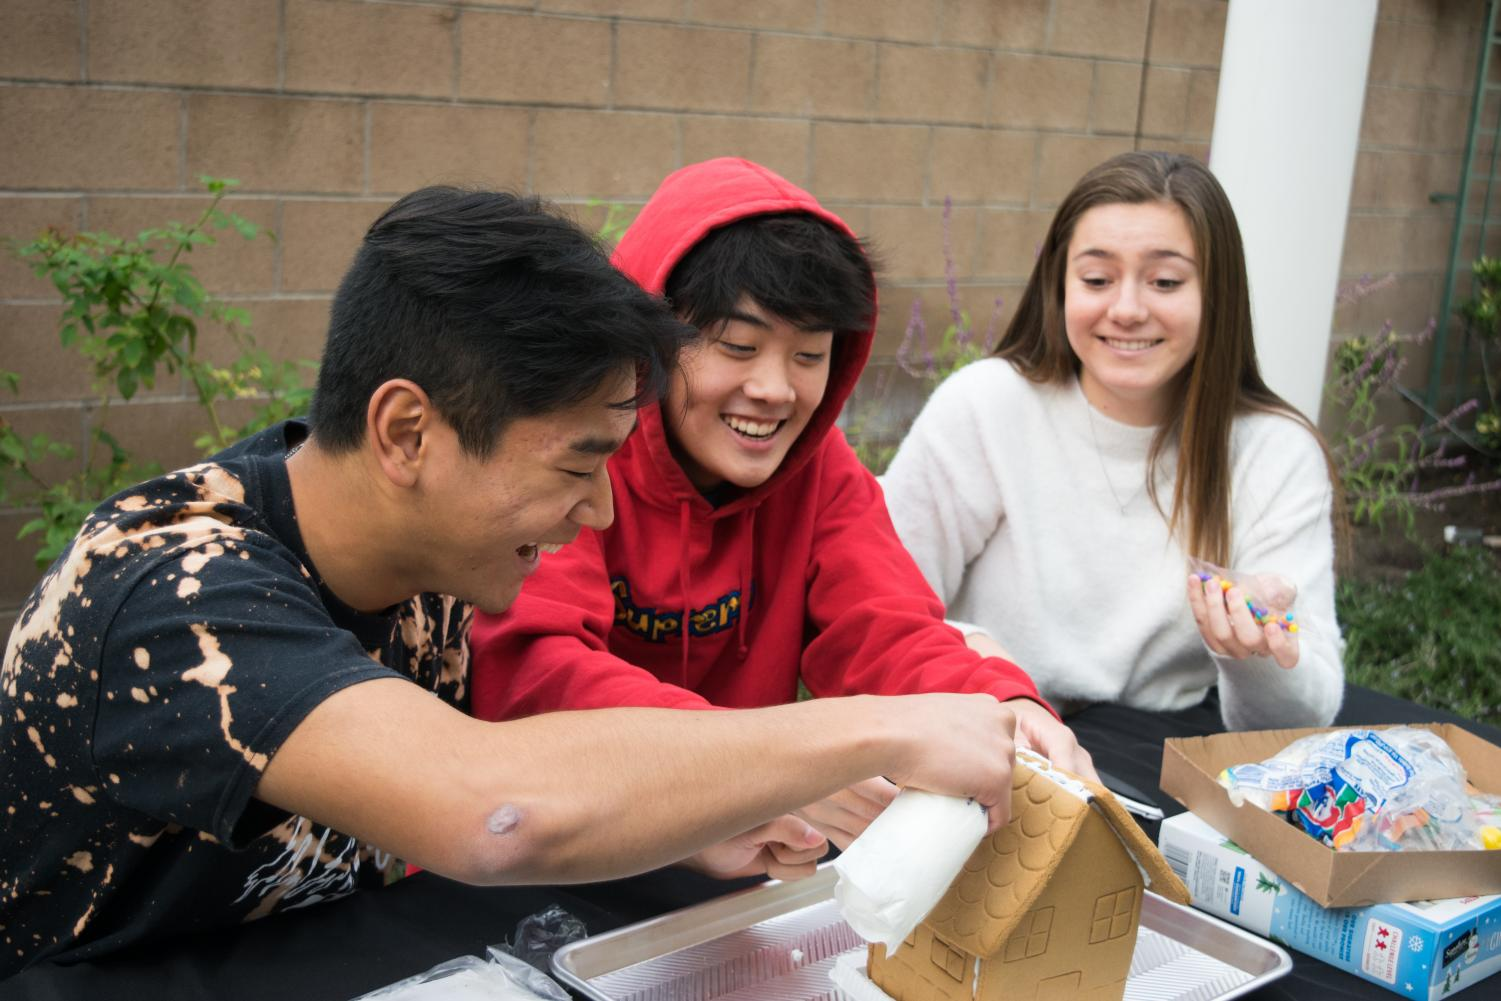 OH SNAP!: Juniors Audrey Prickett, Andrew Kim and Evan Choi (left to right) decorate the roof of their gingerbread house with icing and colorful candies.